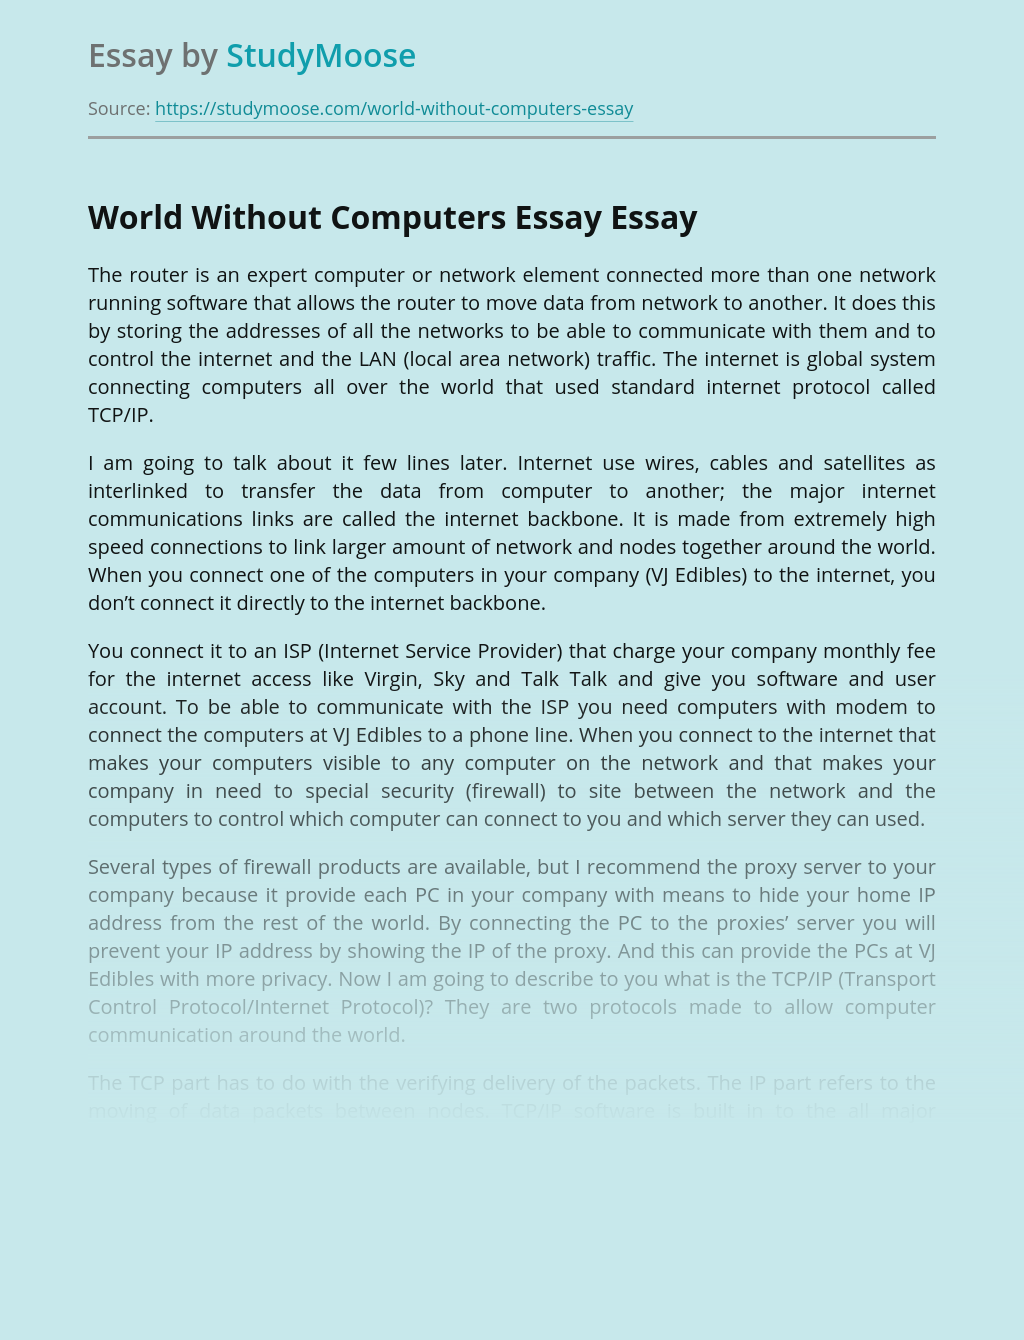 World Without Computers Essay